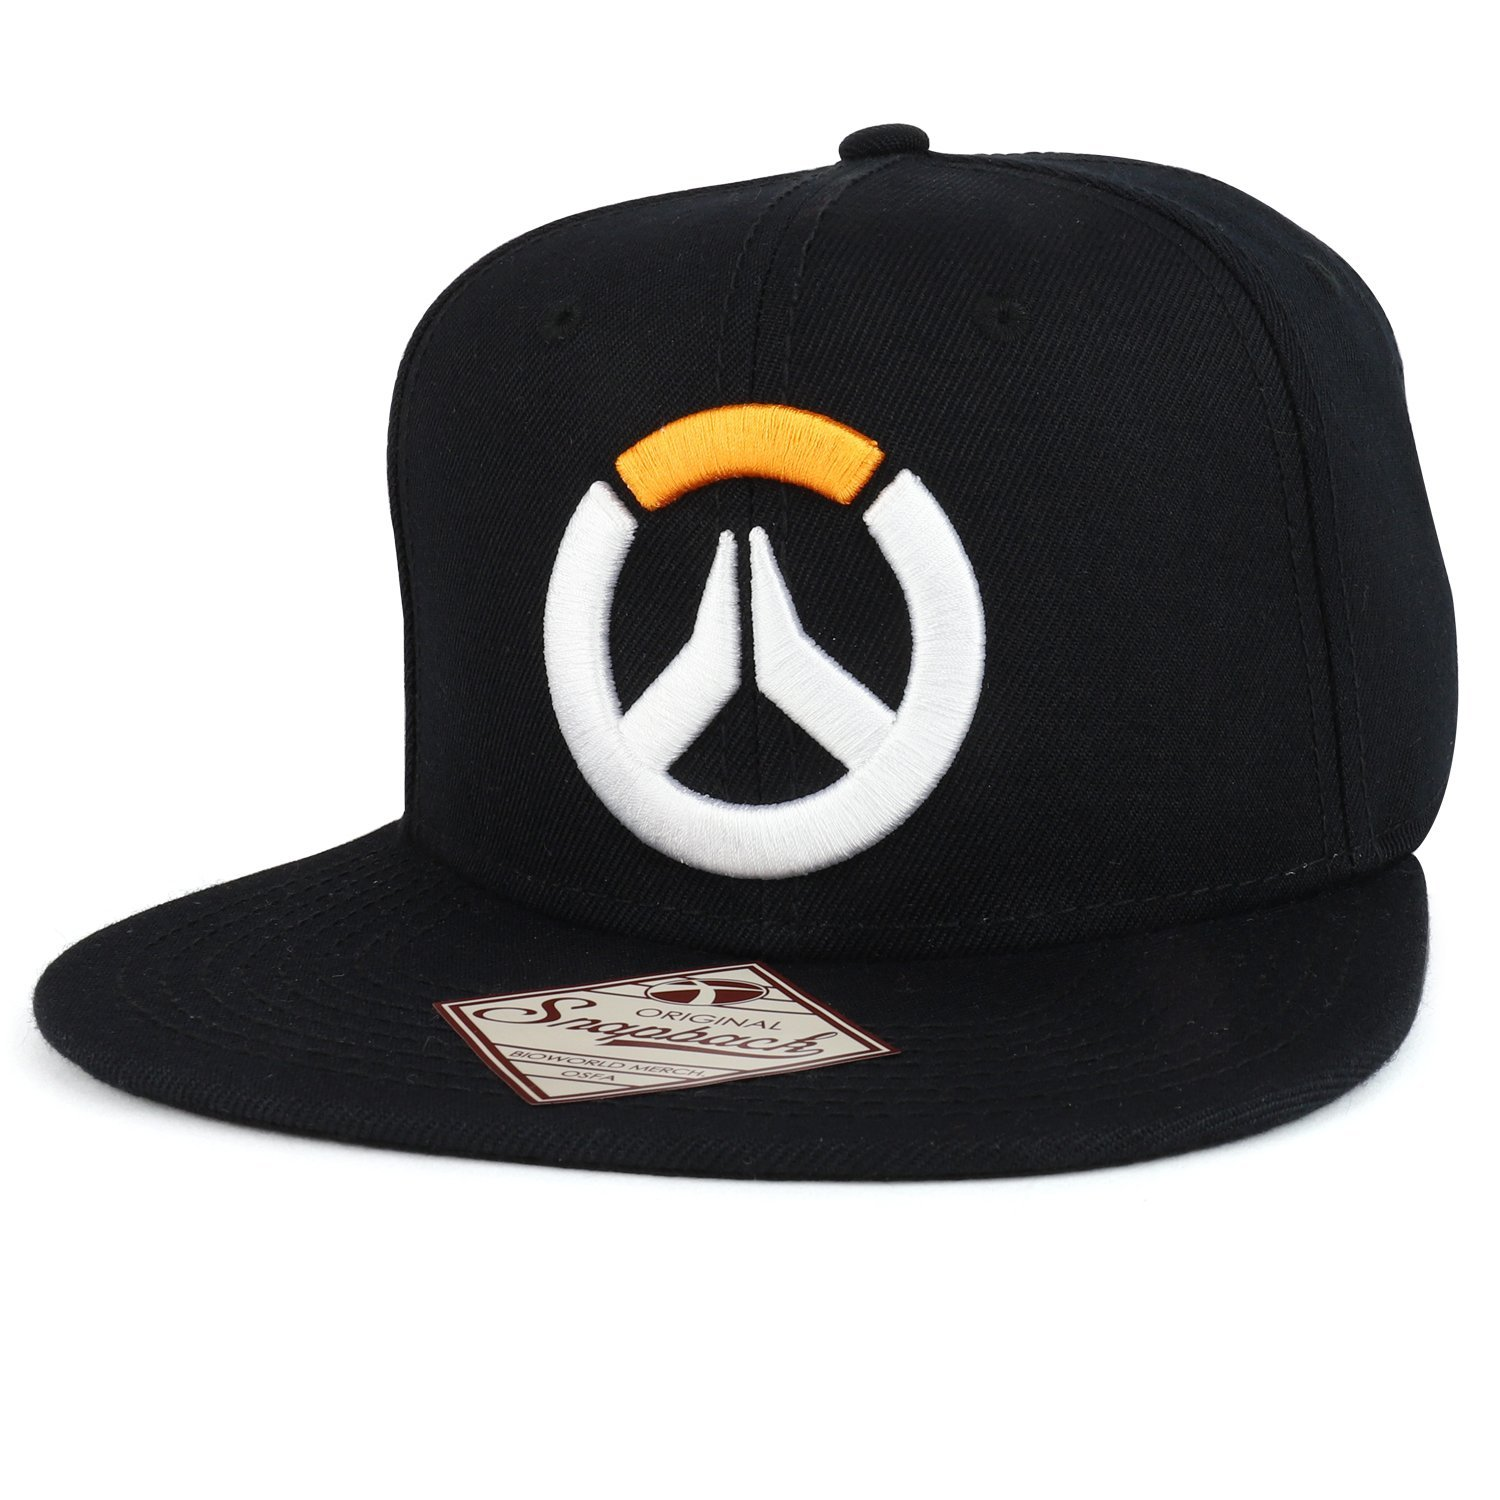 Armycrew Officially Licensed Overwatch 3D Logo Embroidered Snapback Cap